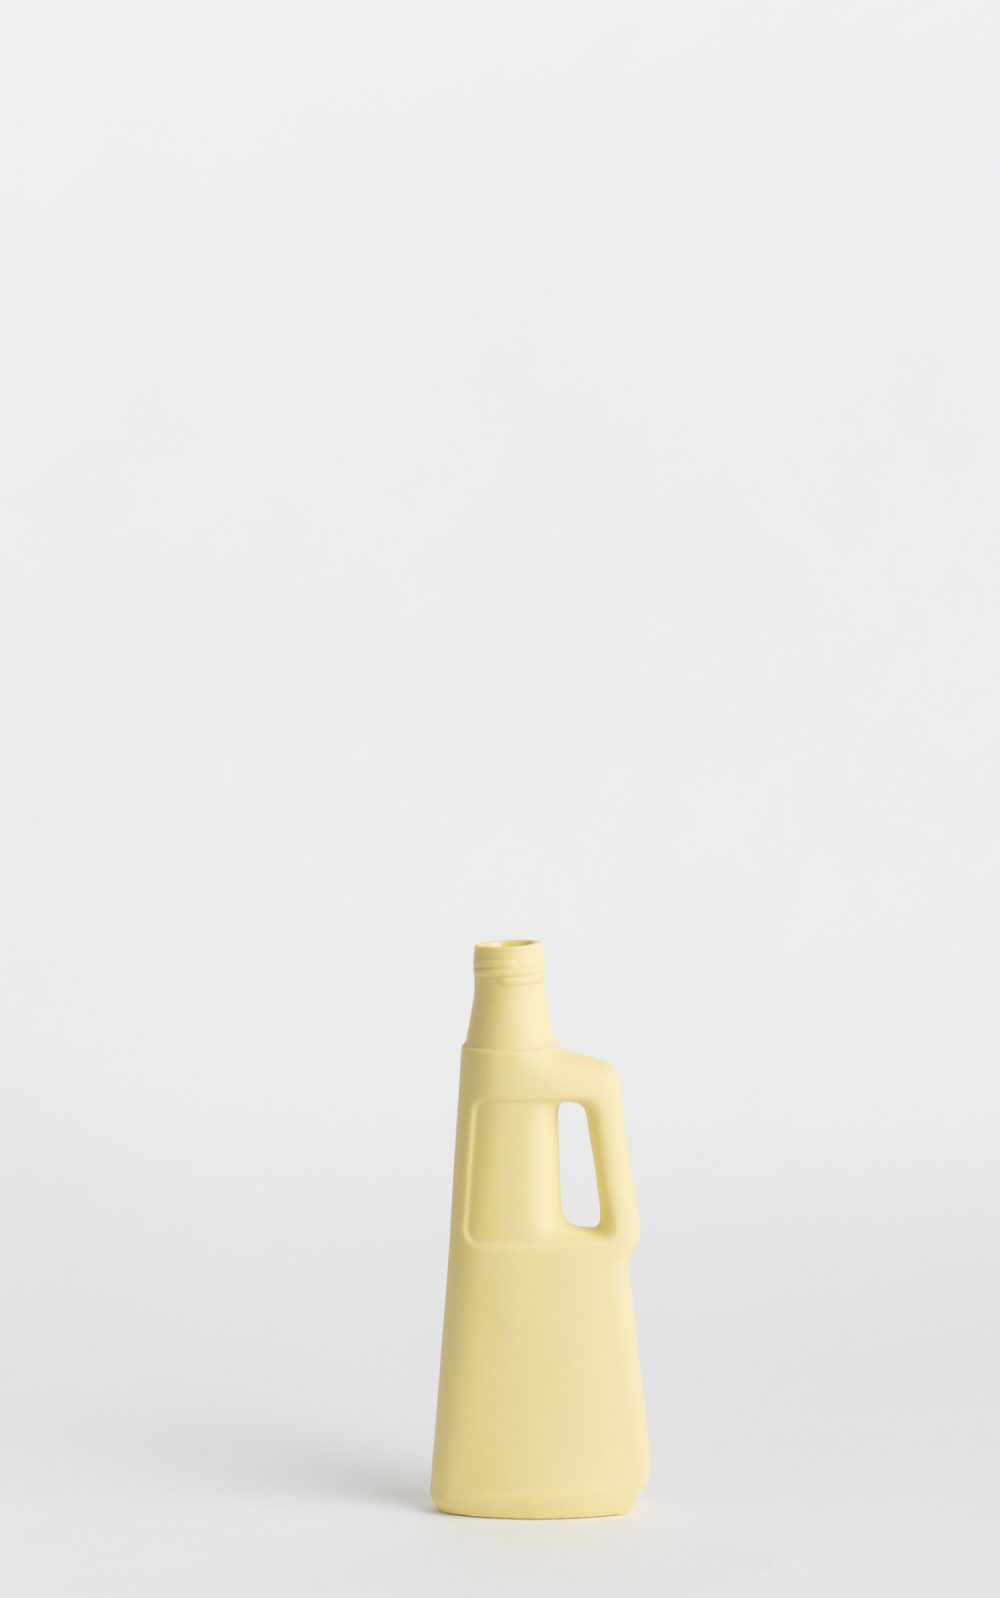 bottle vase #9 fresh yellow